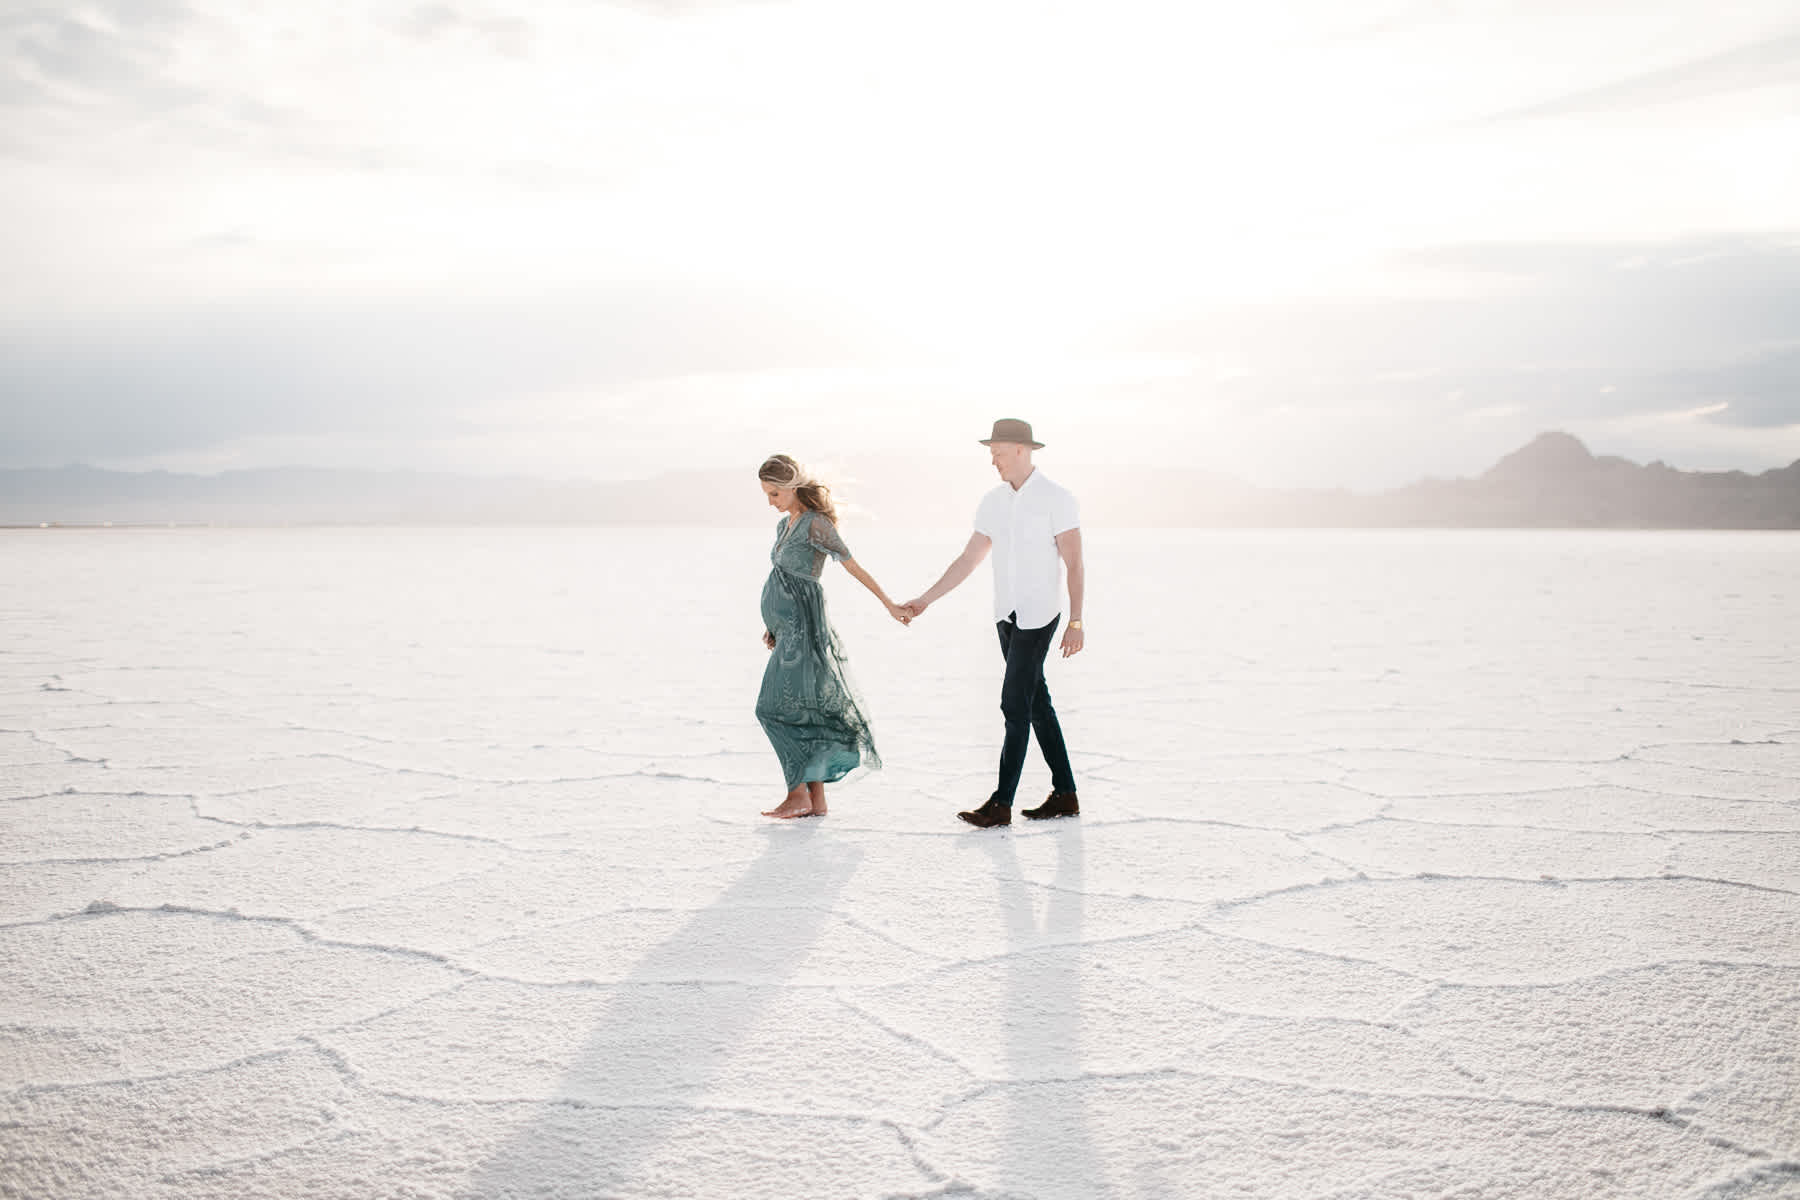 bonneville-utah-salt-flats-lifestyle-maternity-shoot-52